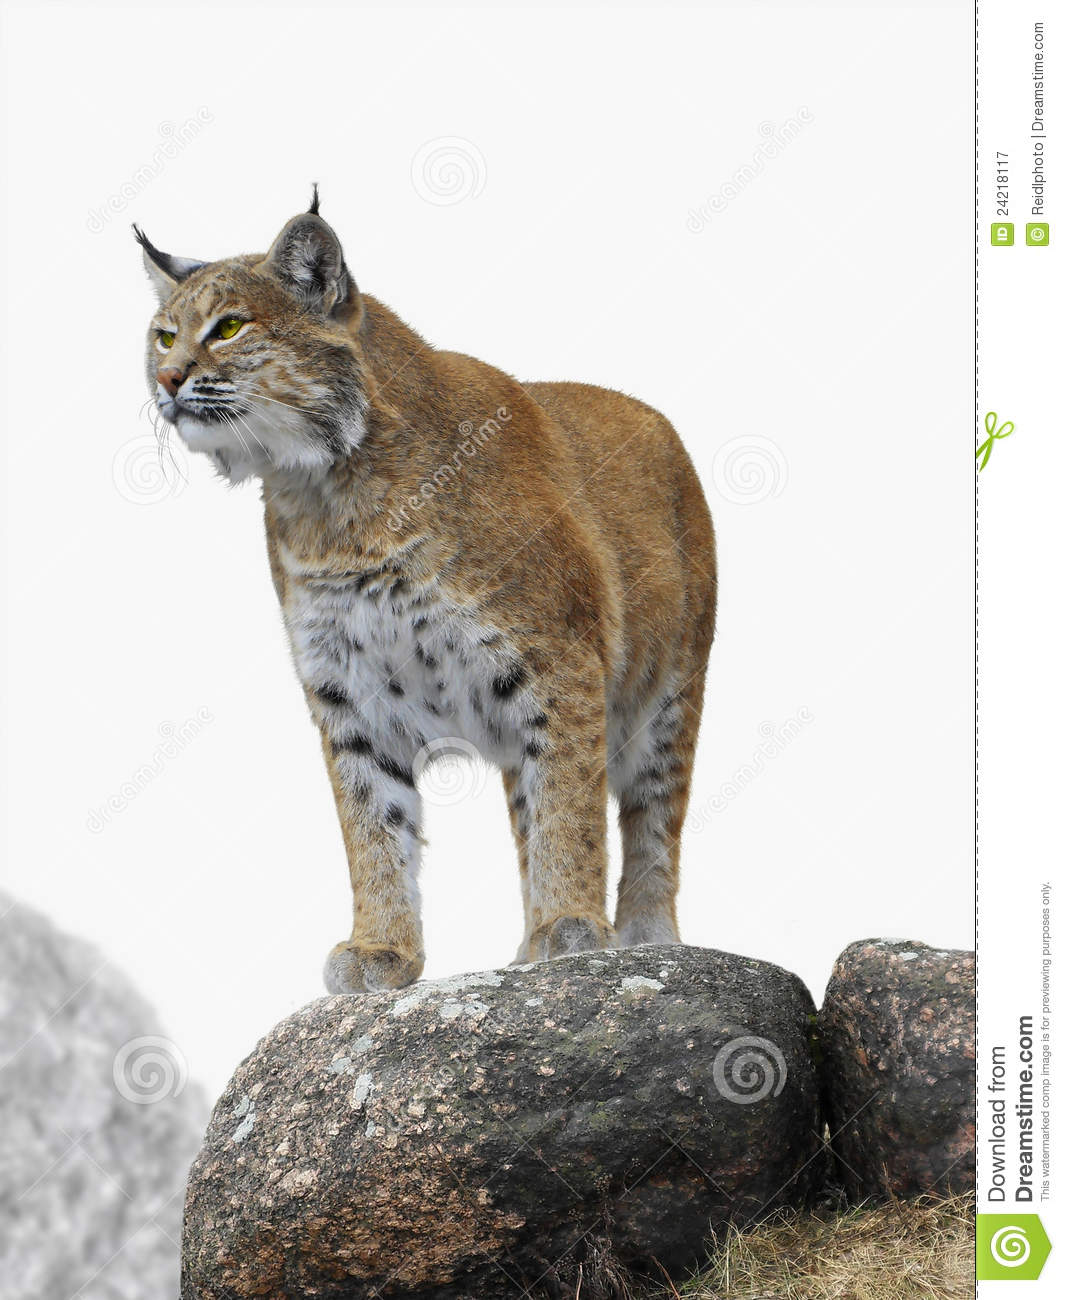 Download Lynx stock image. Image of beast, paws, image, formidable - 24218117